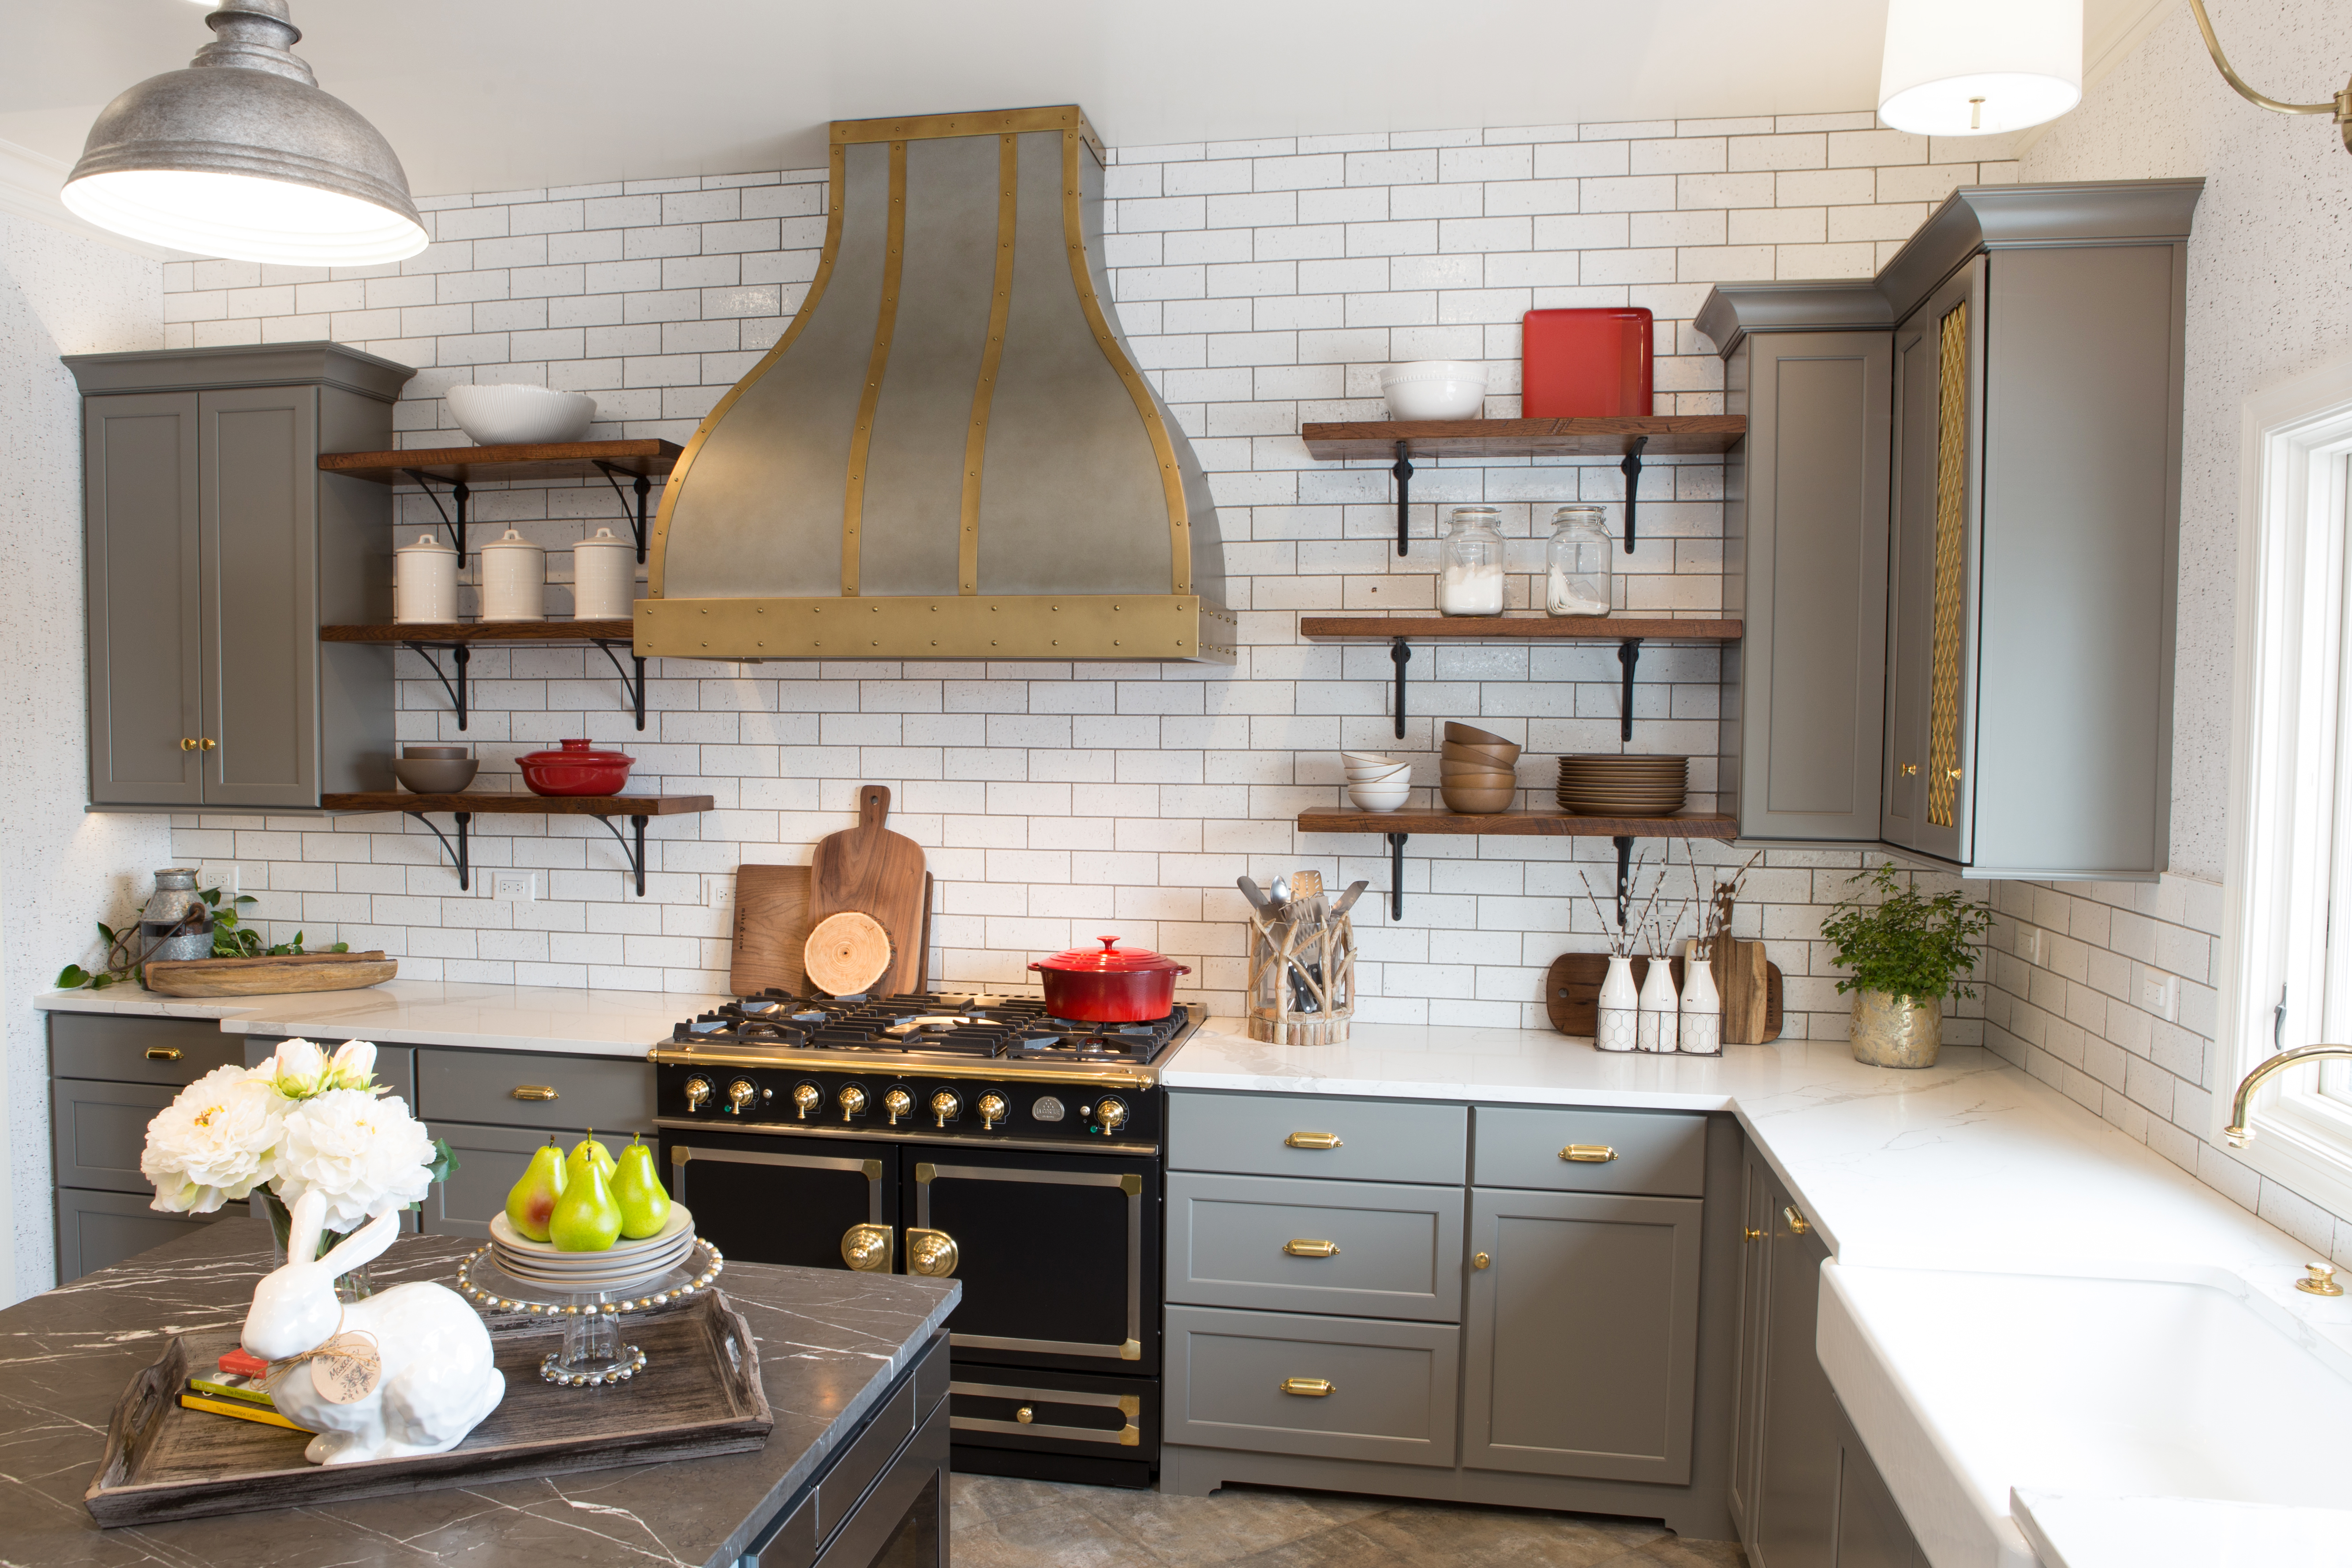 Gray cabinets in a Gray, White, and Gold kitchen design. Beautiful custom Zinc and Brass range hood by Vogler Metalwork & Design proudly centers over the black enamel and brass LaCornue range.